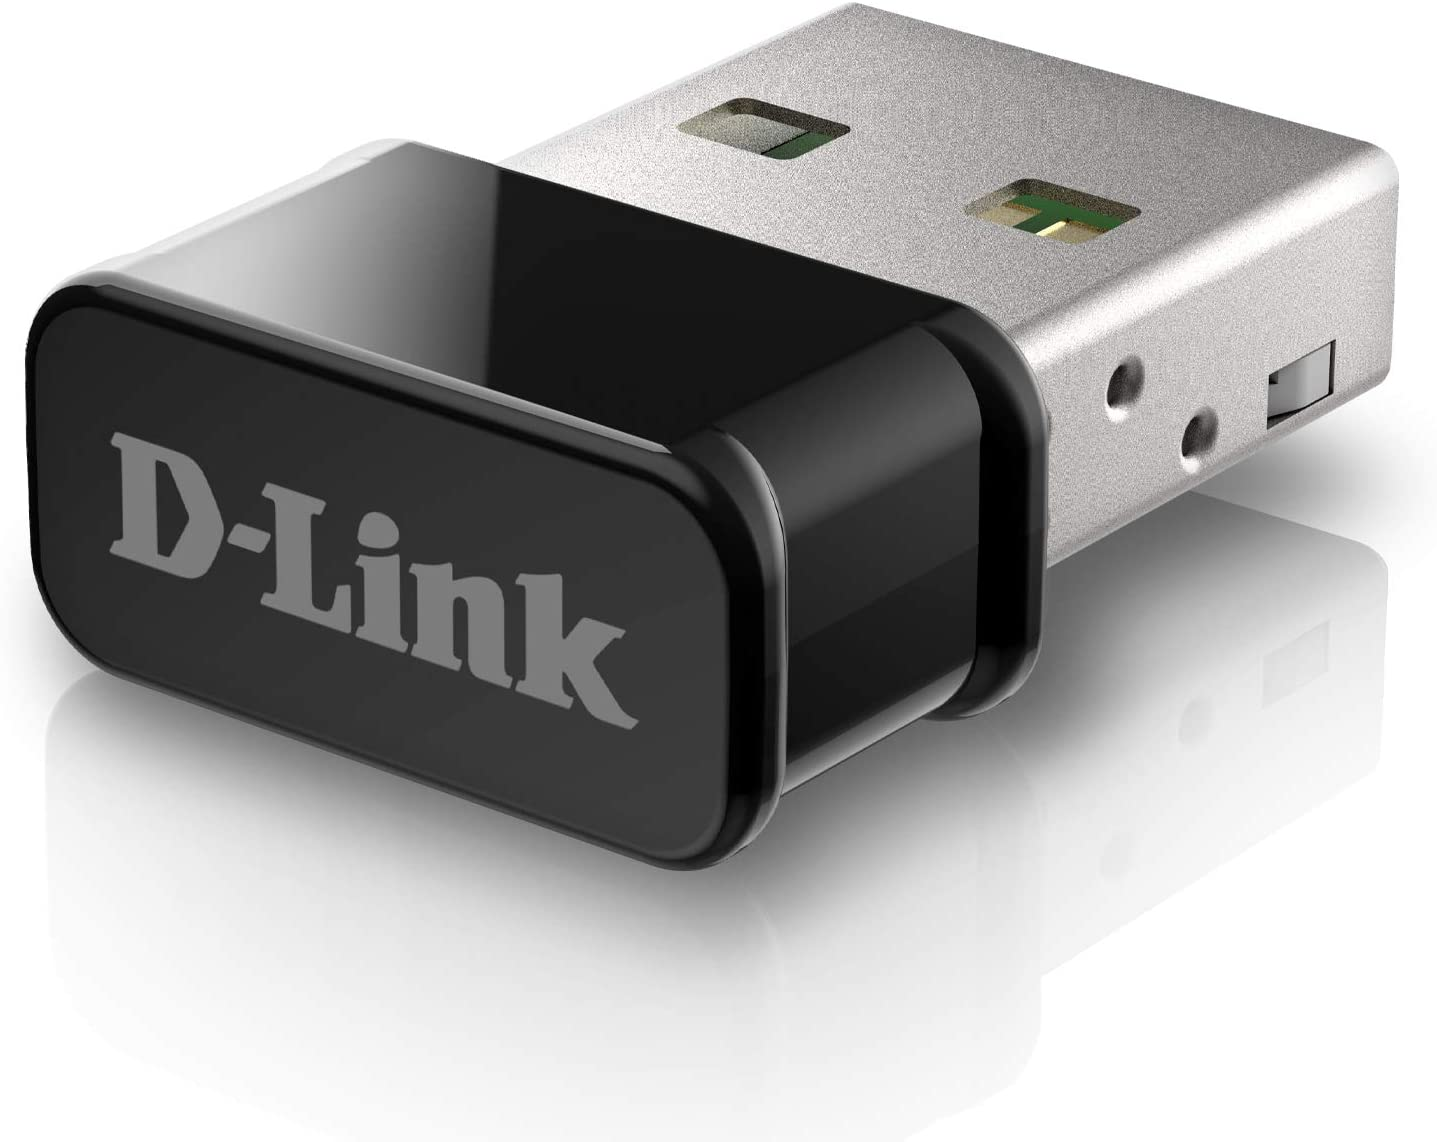 D-Link USB WiFi Adapter Dual Band AC1300 Wireless Internet for Desktop PC Laptop Gaming MU-MIMO Windows Mac Linux Supported (DWA-181-US)